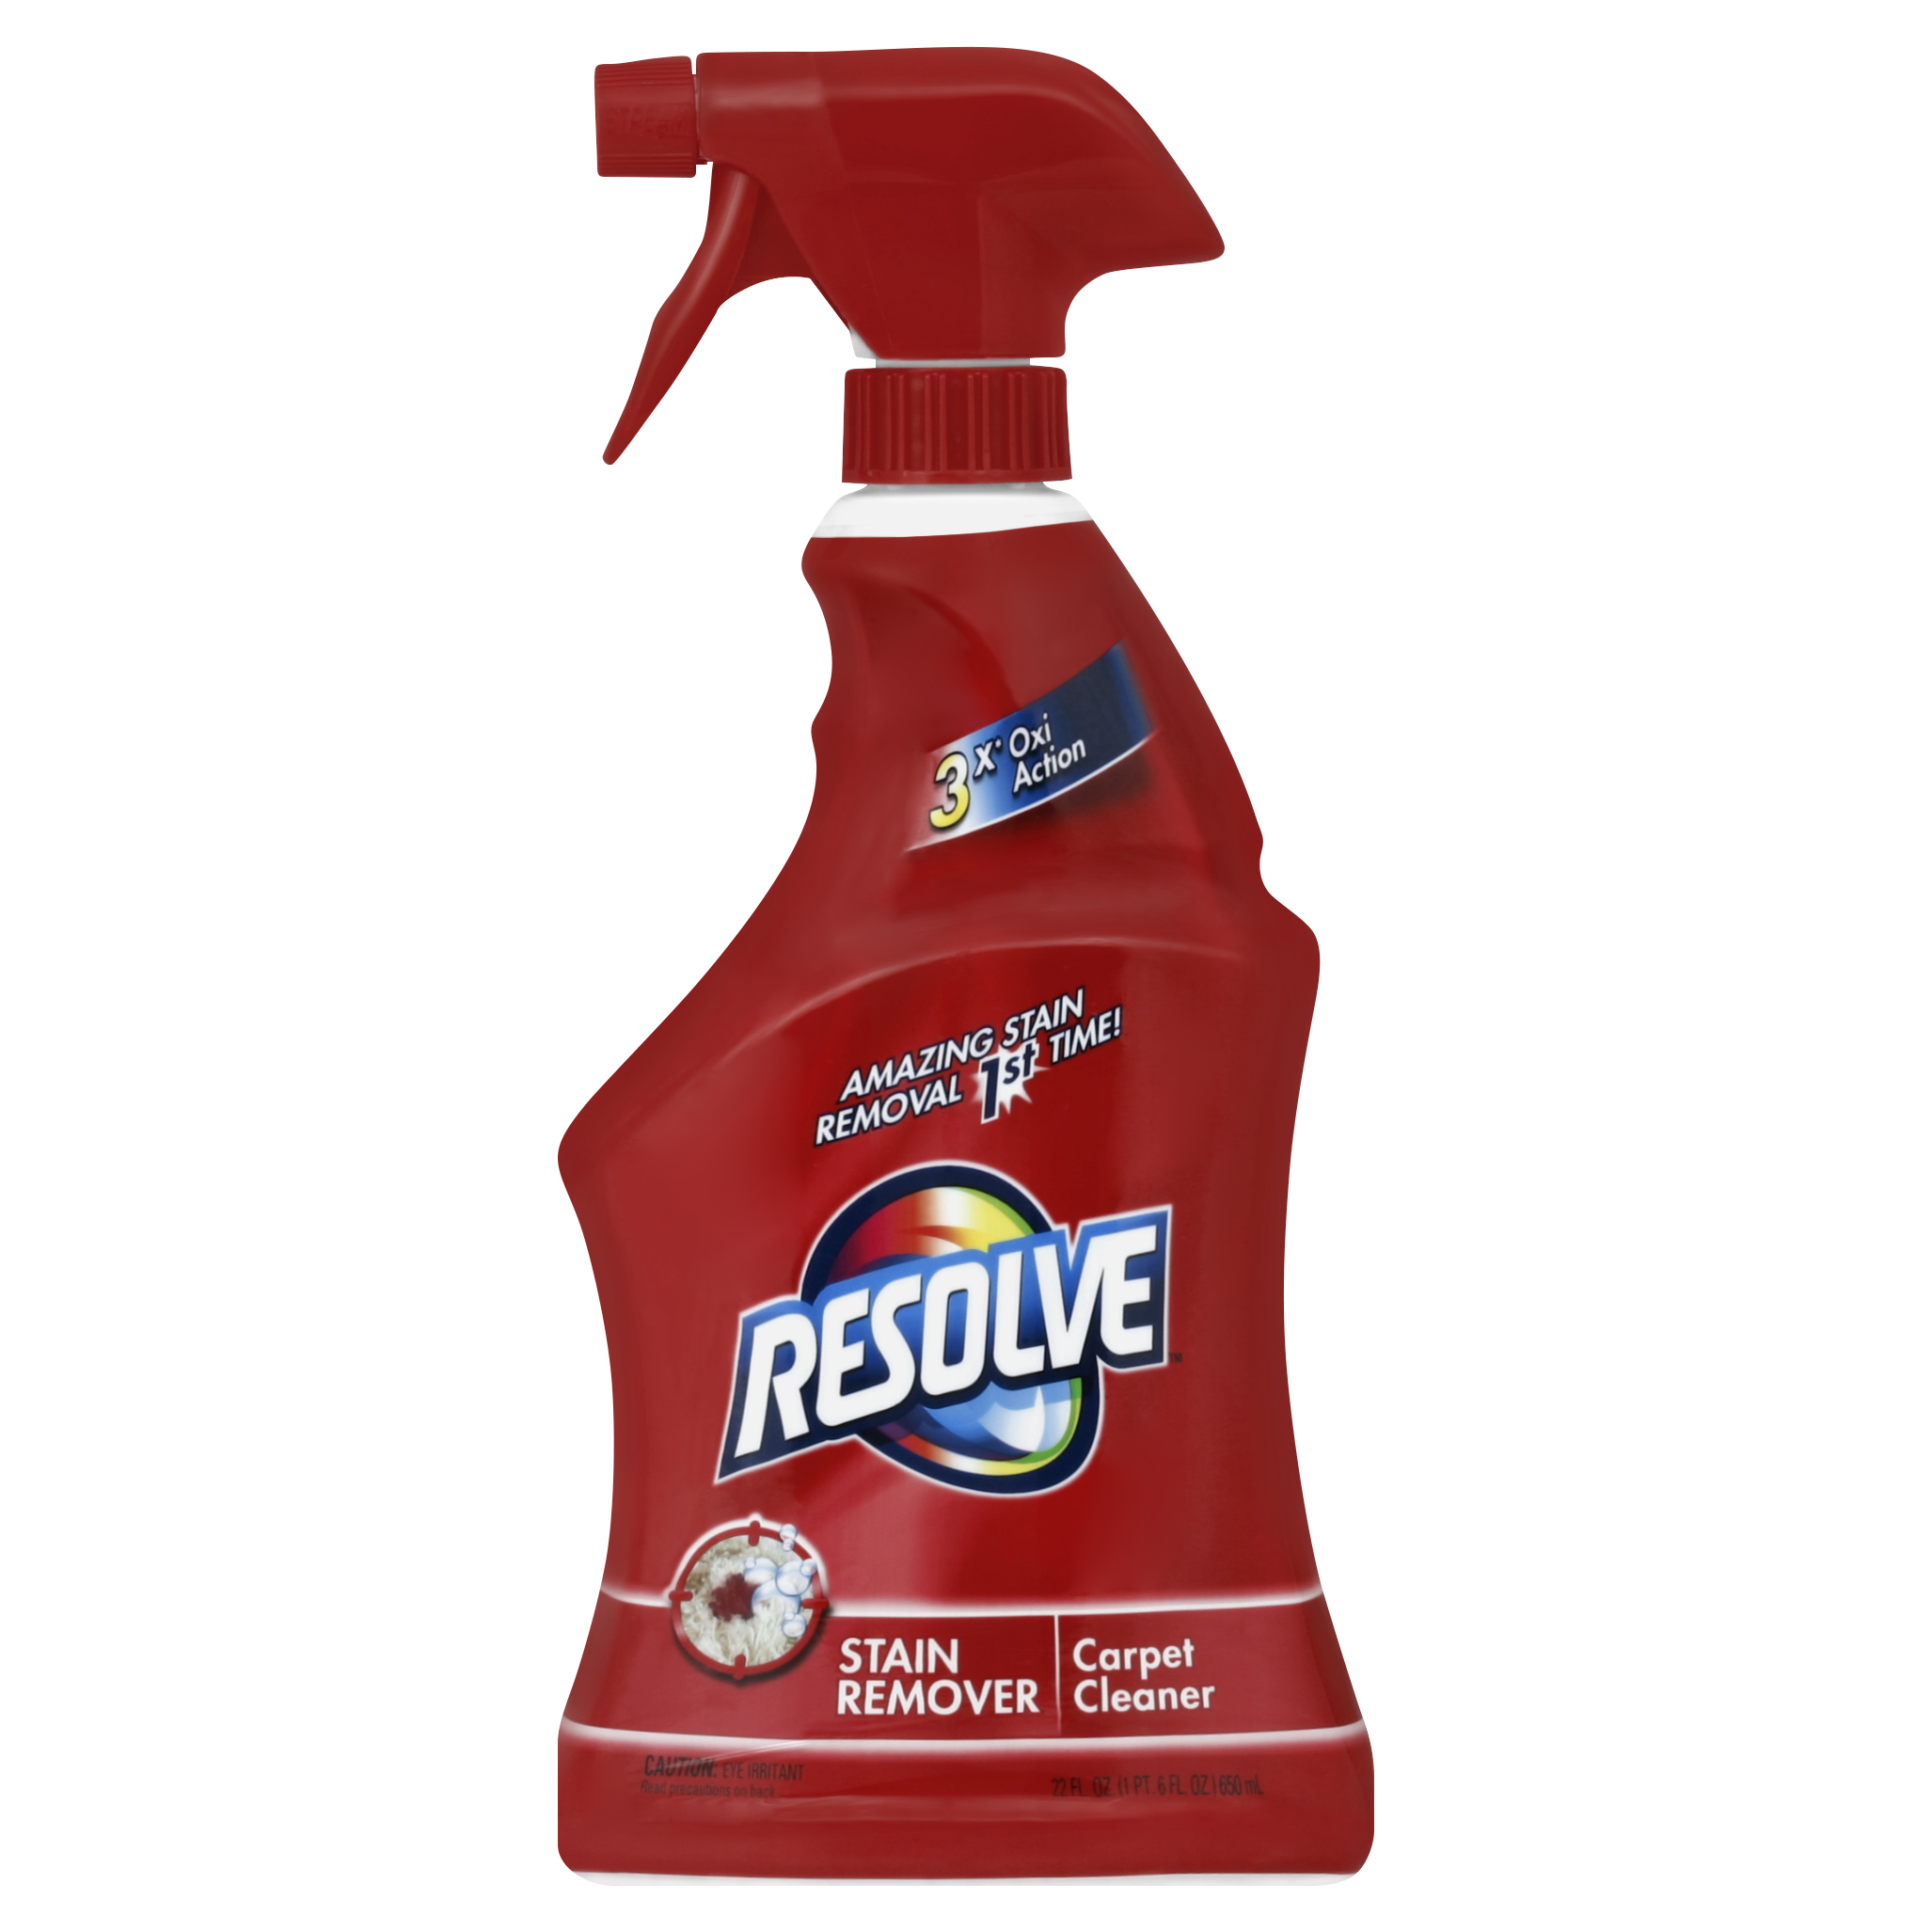 Resolve Stain Remover Carpet Cleaner 22 Fl Oz Spray Bottle Walmart